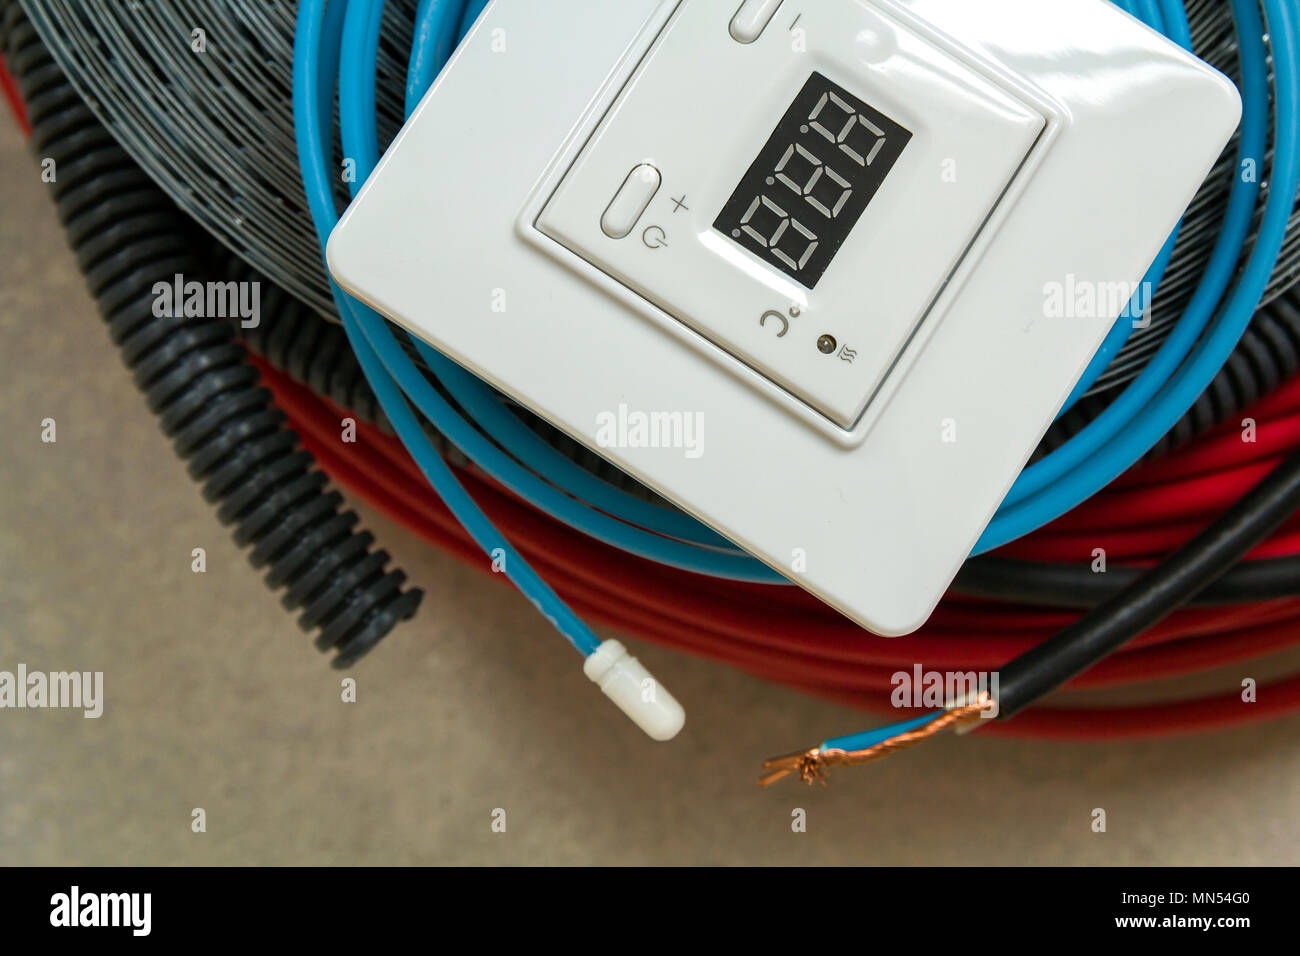 Heating Floor System Wires Cables And Control Panel Renovation Basic House Wiring Construction Concept Comfort